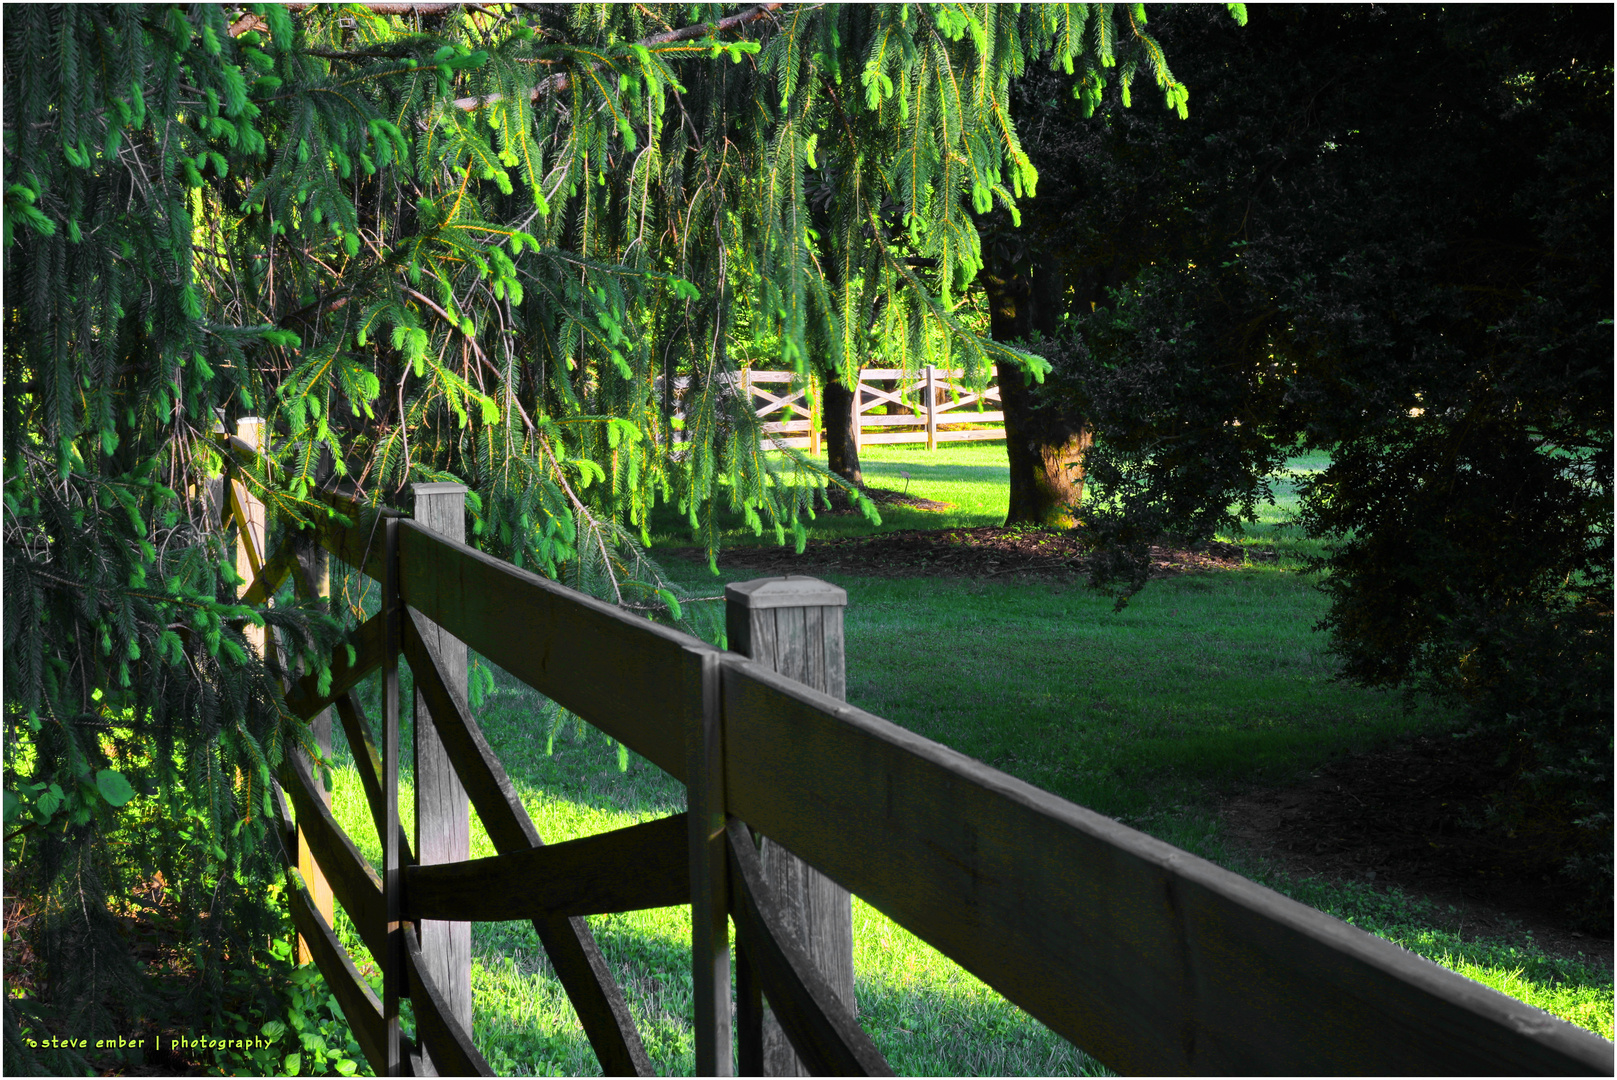 Fences on a Late Afternoon in Spring